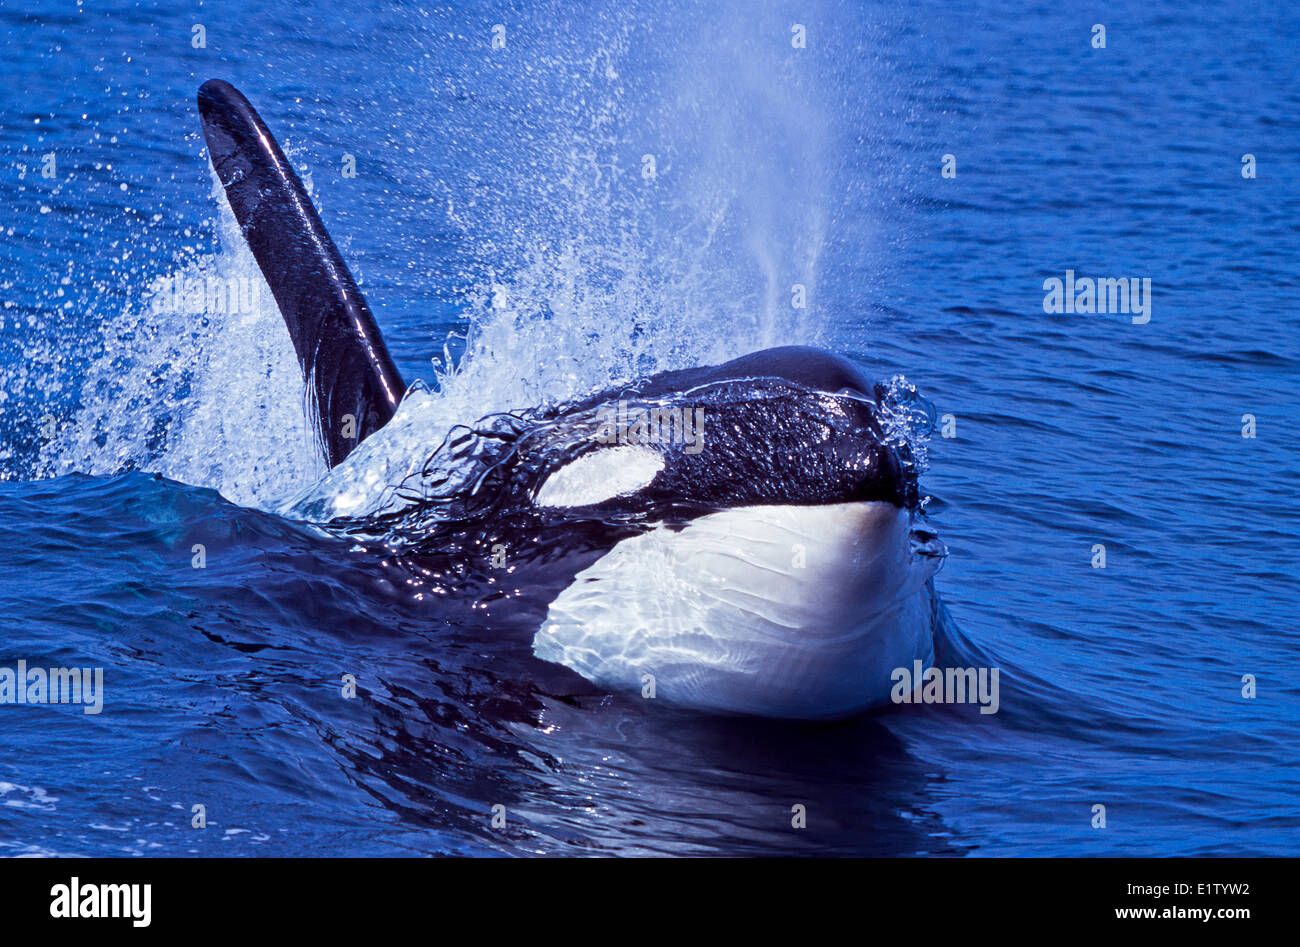 Surfing Orca whale, Killer whale, British Columbia, Canada - Stock Image